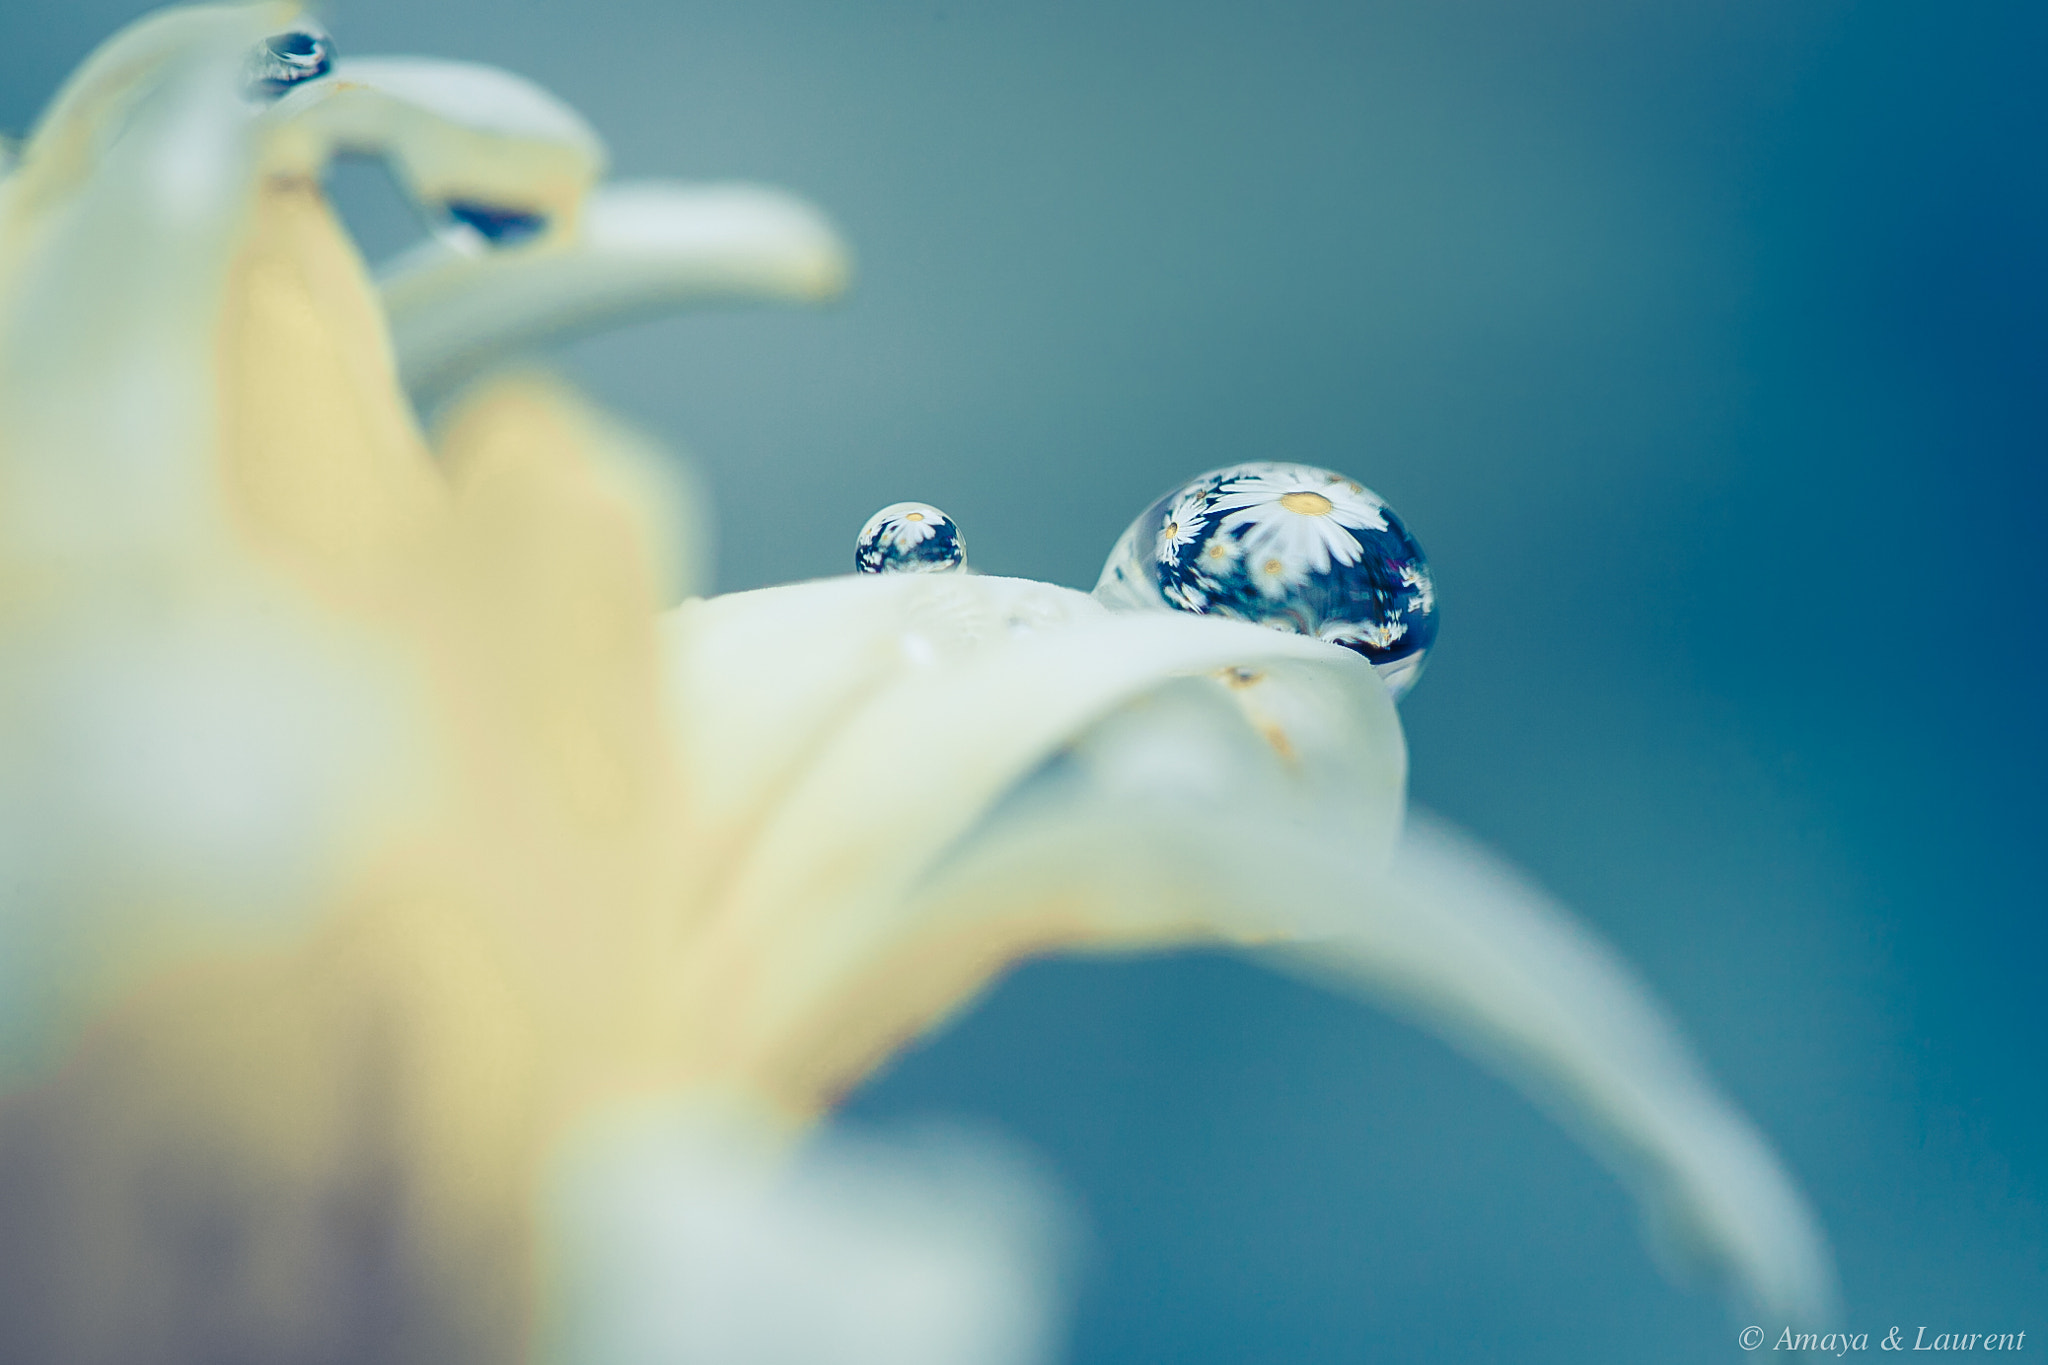 Photograph flower tears by Amaya Bercetche on 500px